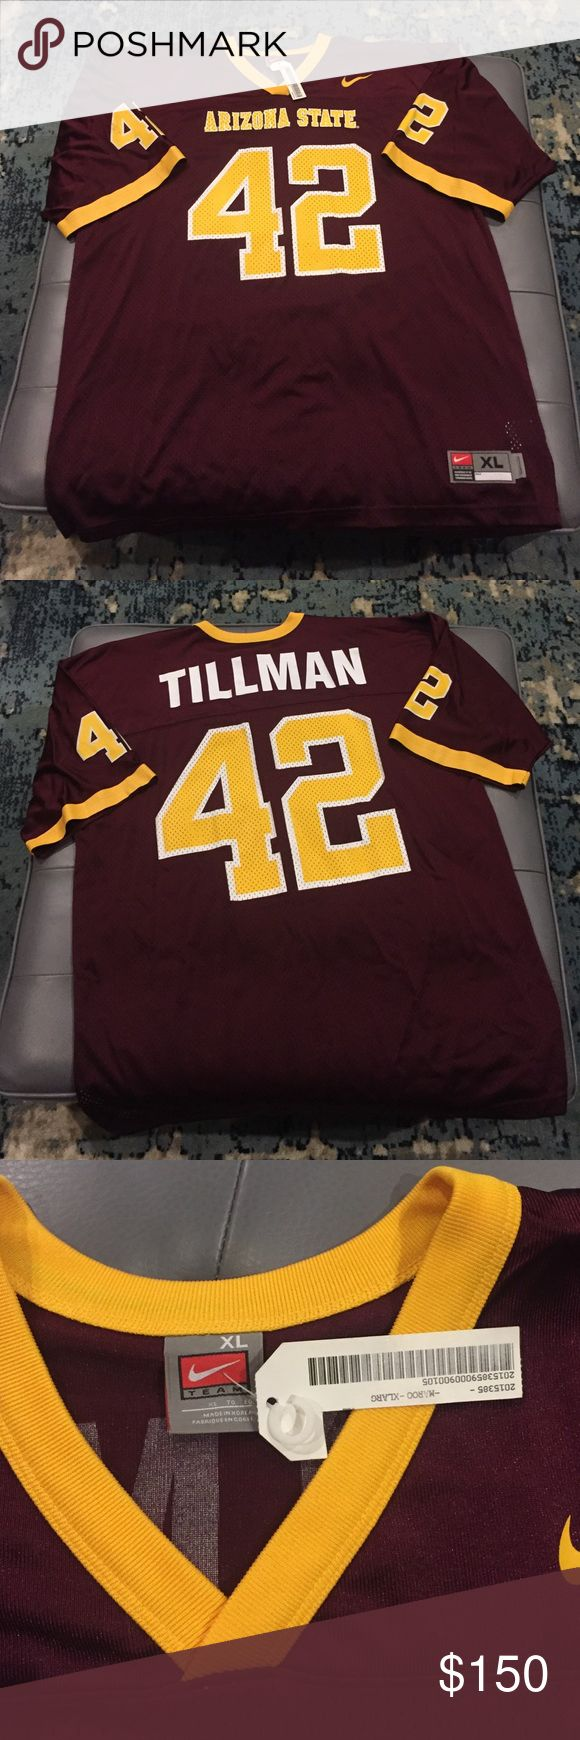 new product c5b1b 82499 40 pat tillman jersey events